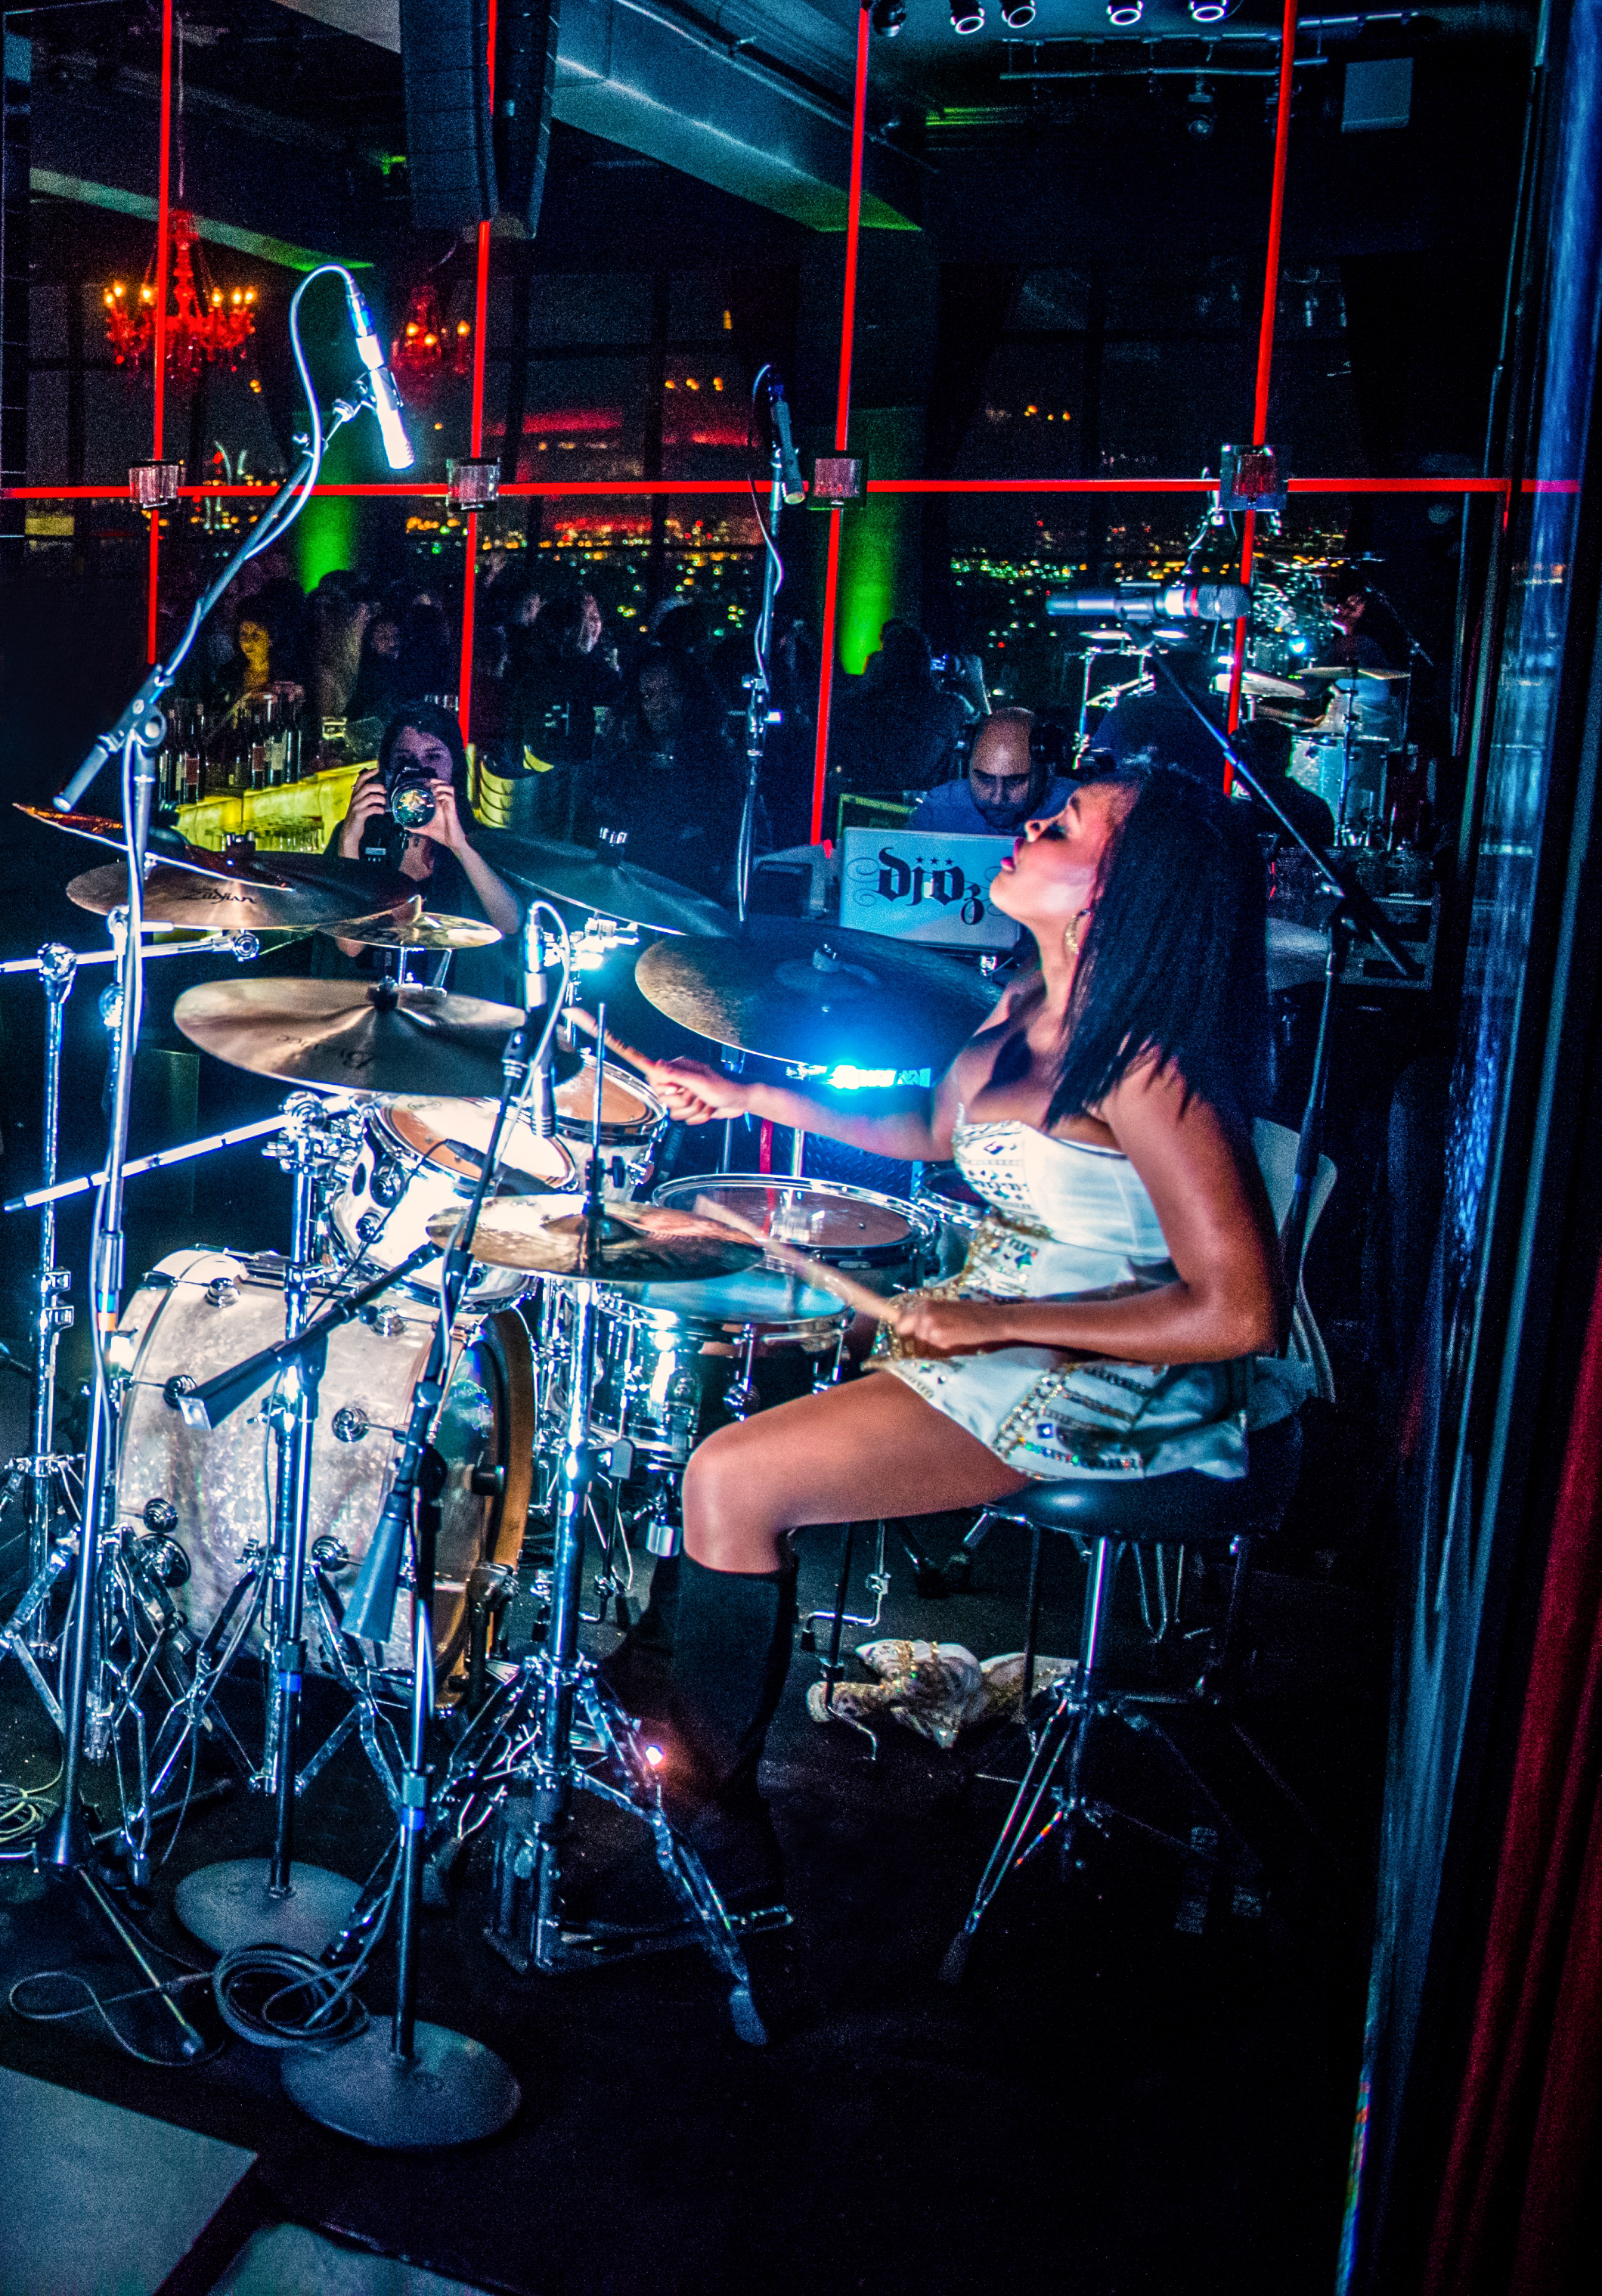 Recording artist, Glorious is a pop singer, livetronica drummer, music producer, songwriter and dynamic entertainer.